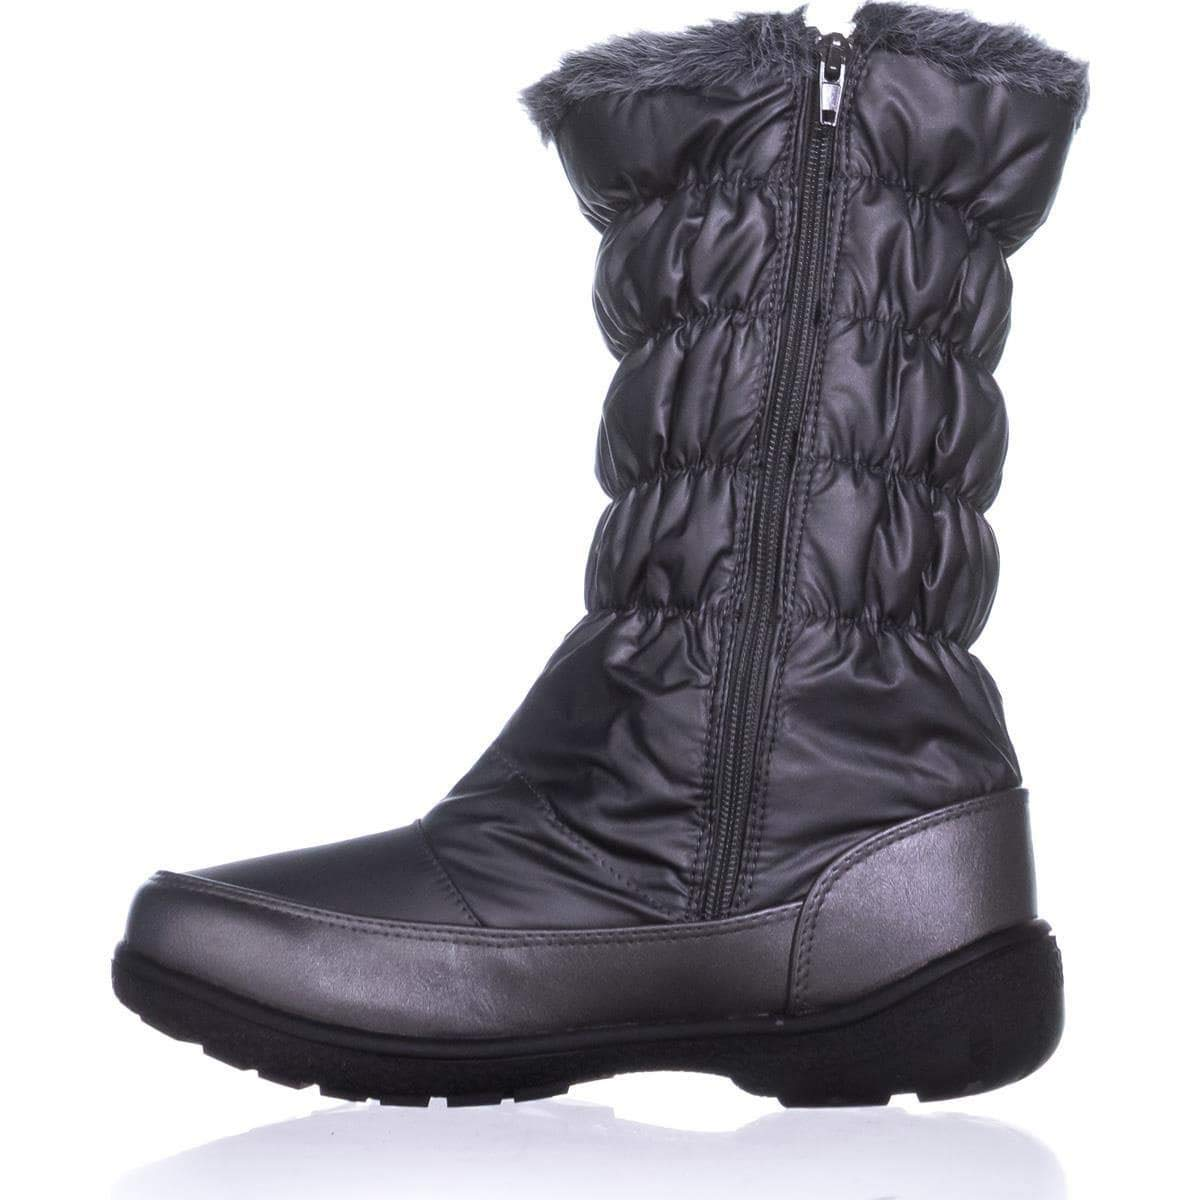 Sporto Makela Cold-Weather Waterproof Boots Size 9 M Silver